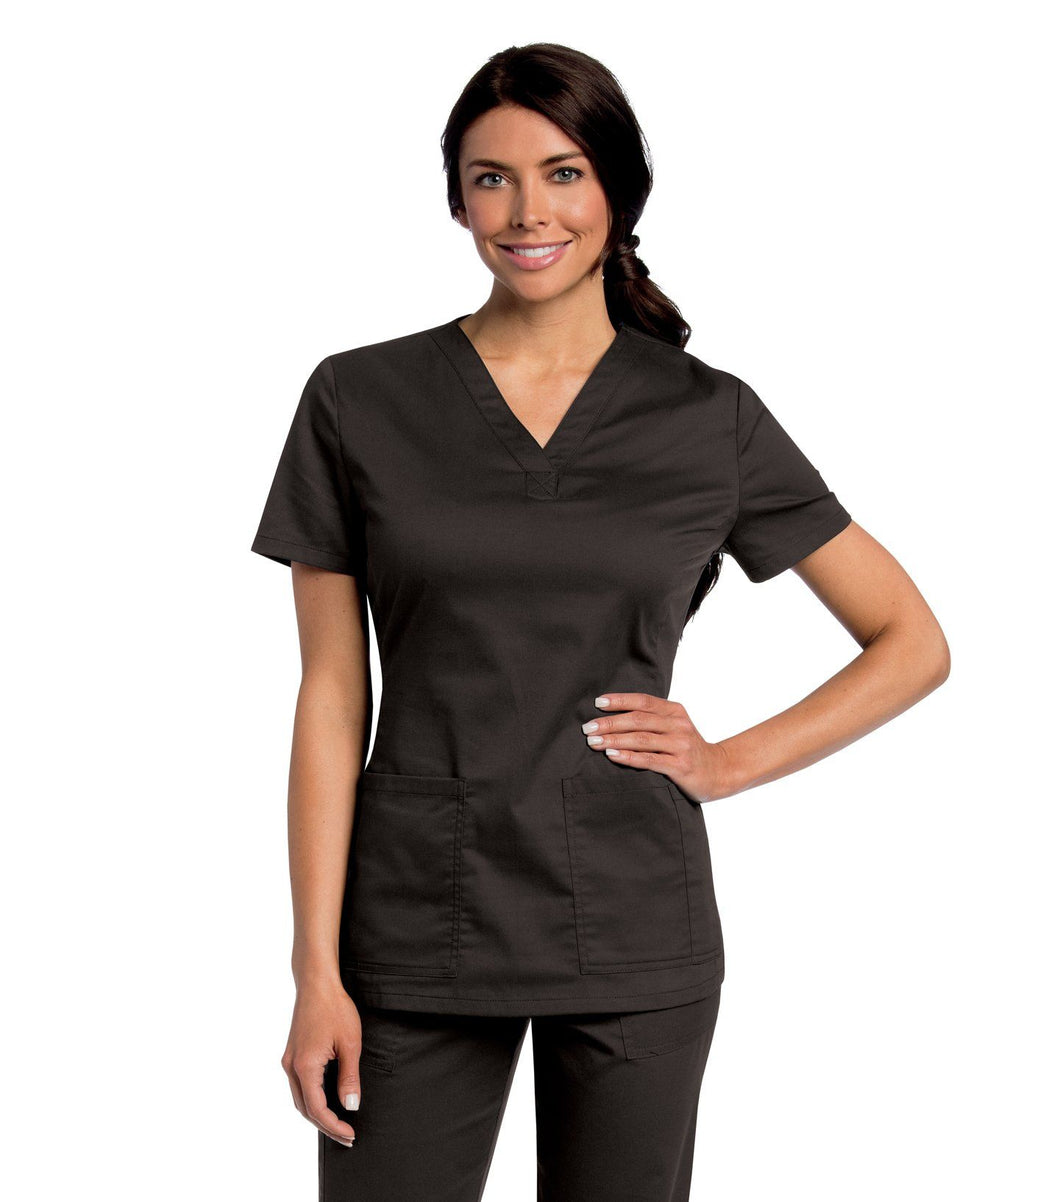 4143 Tunic Scrub Top Black